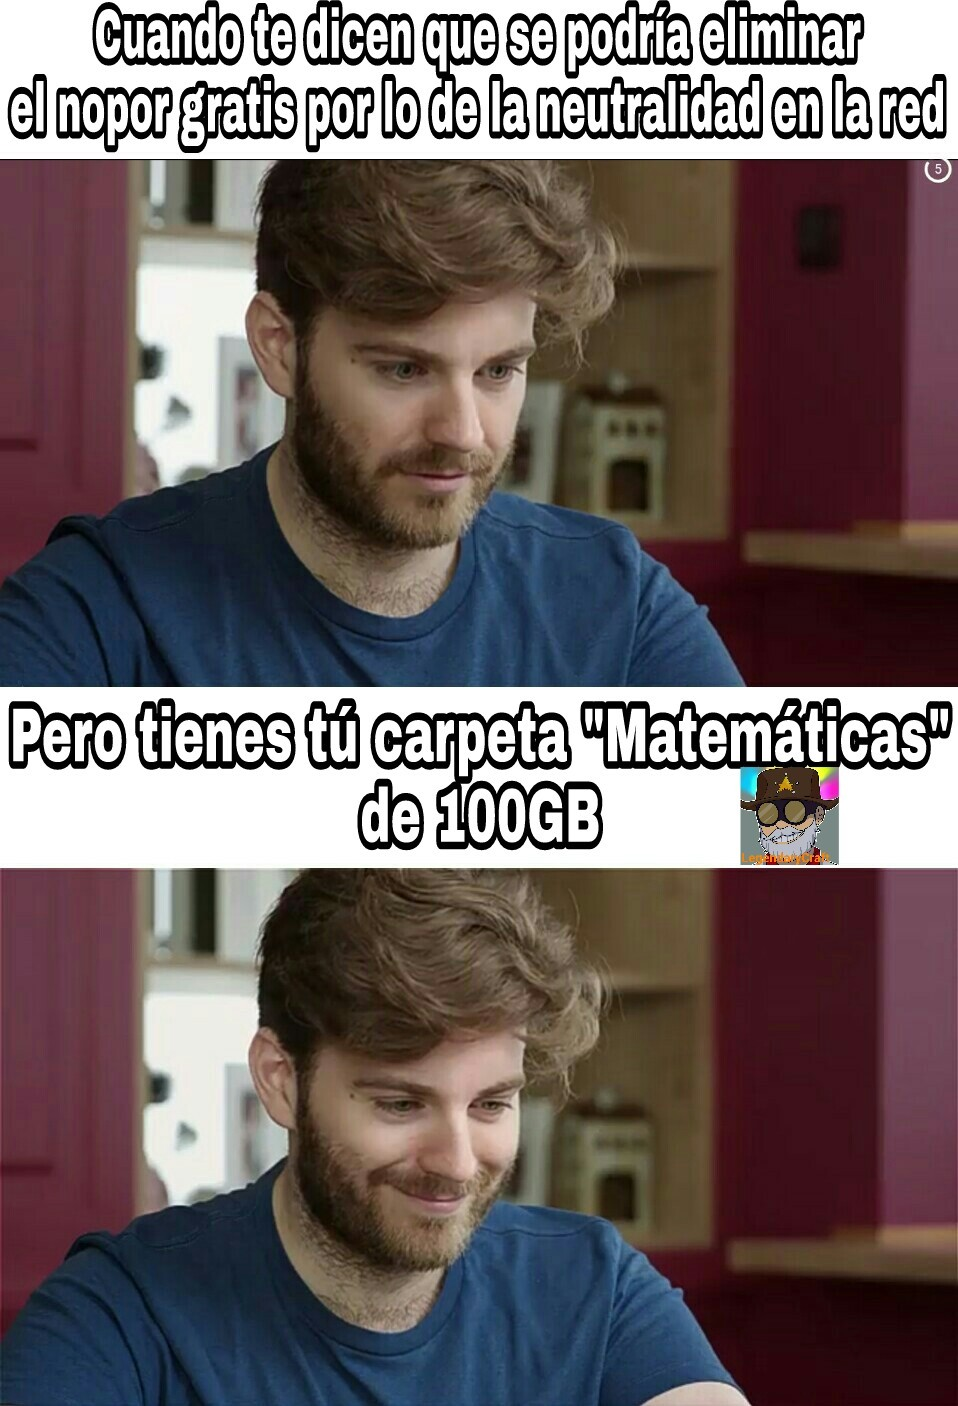 Entendamos la referencia - meme